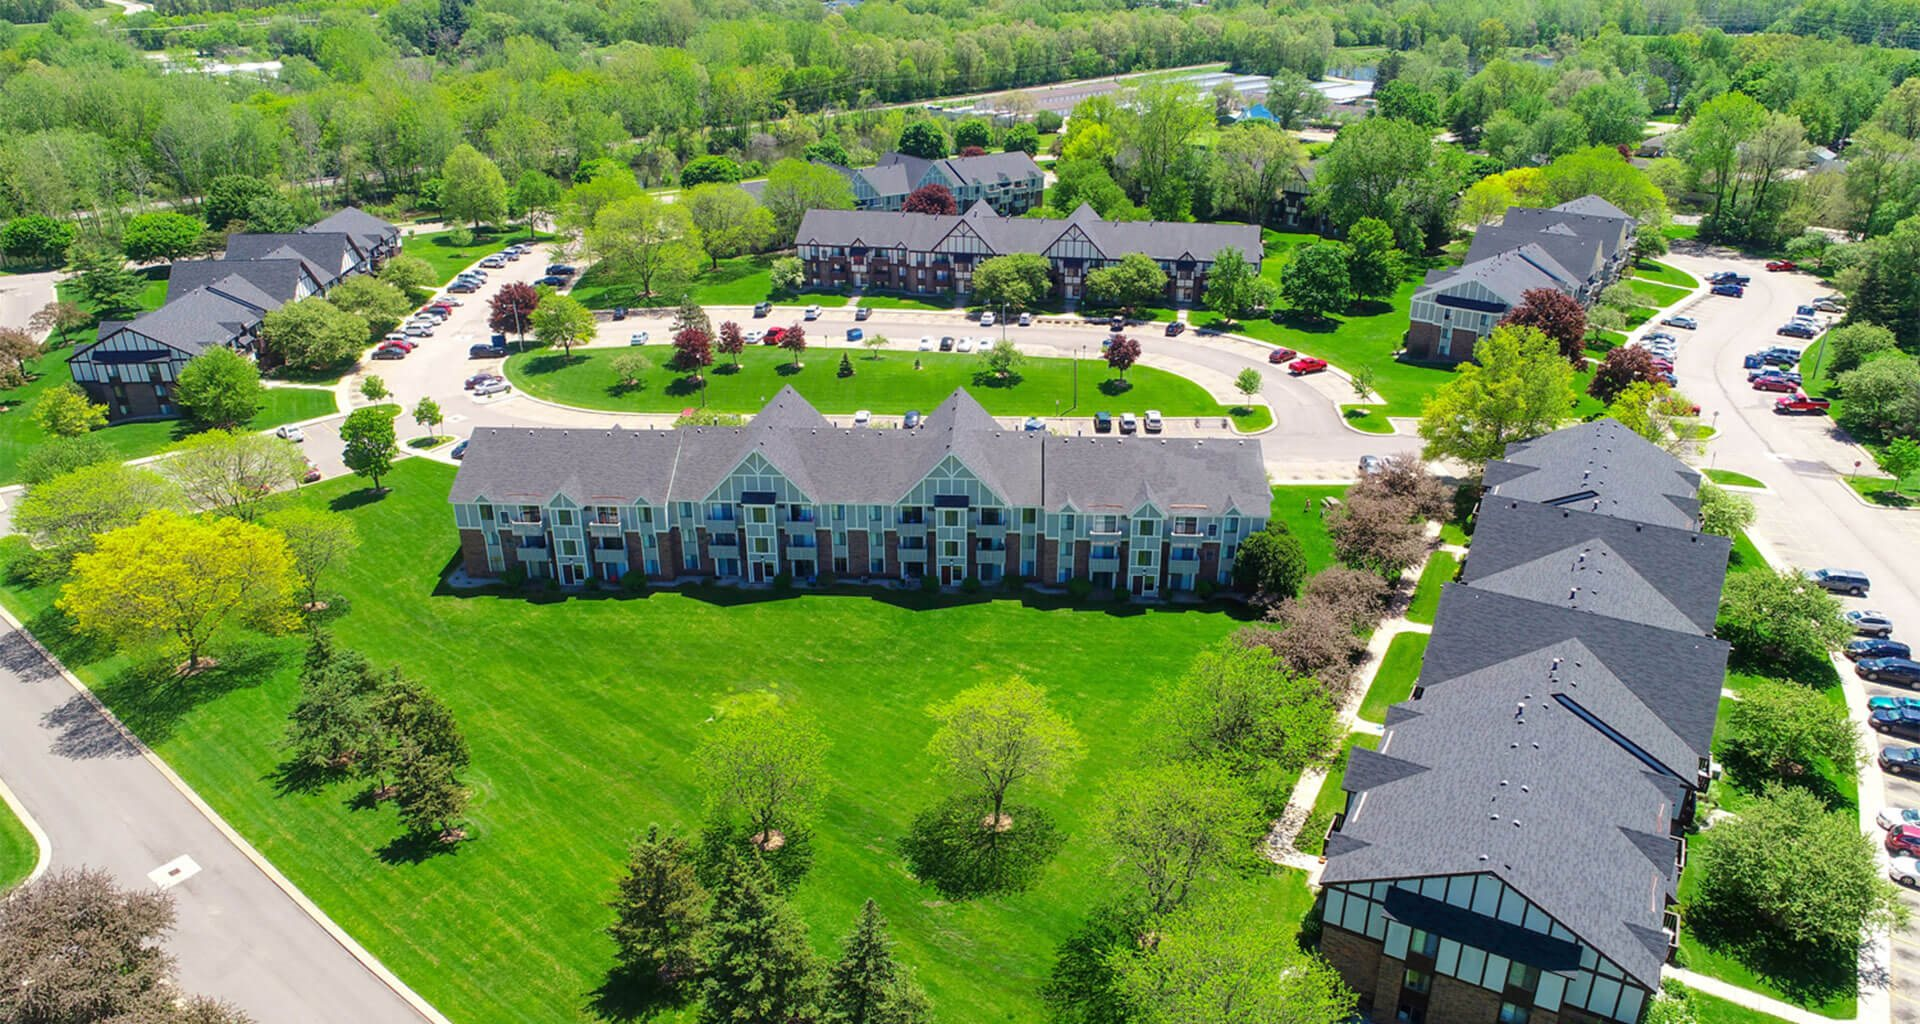 Aerial View of Community at Walnut Trail Apartments, Portage, MI